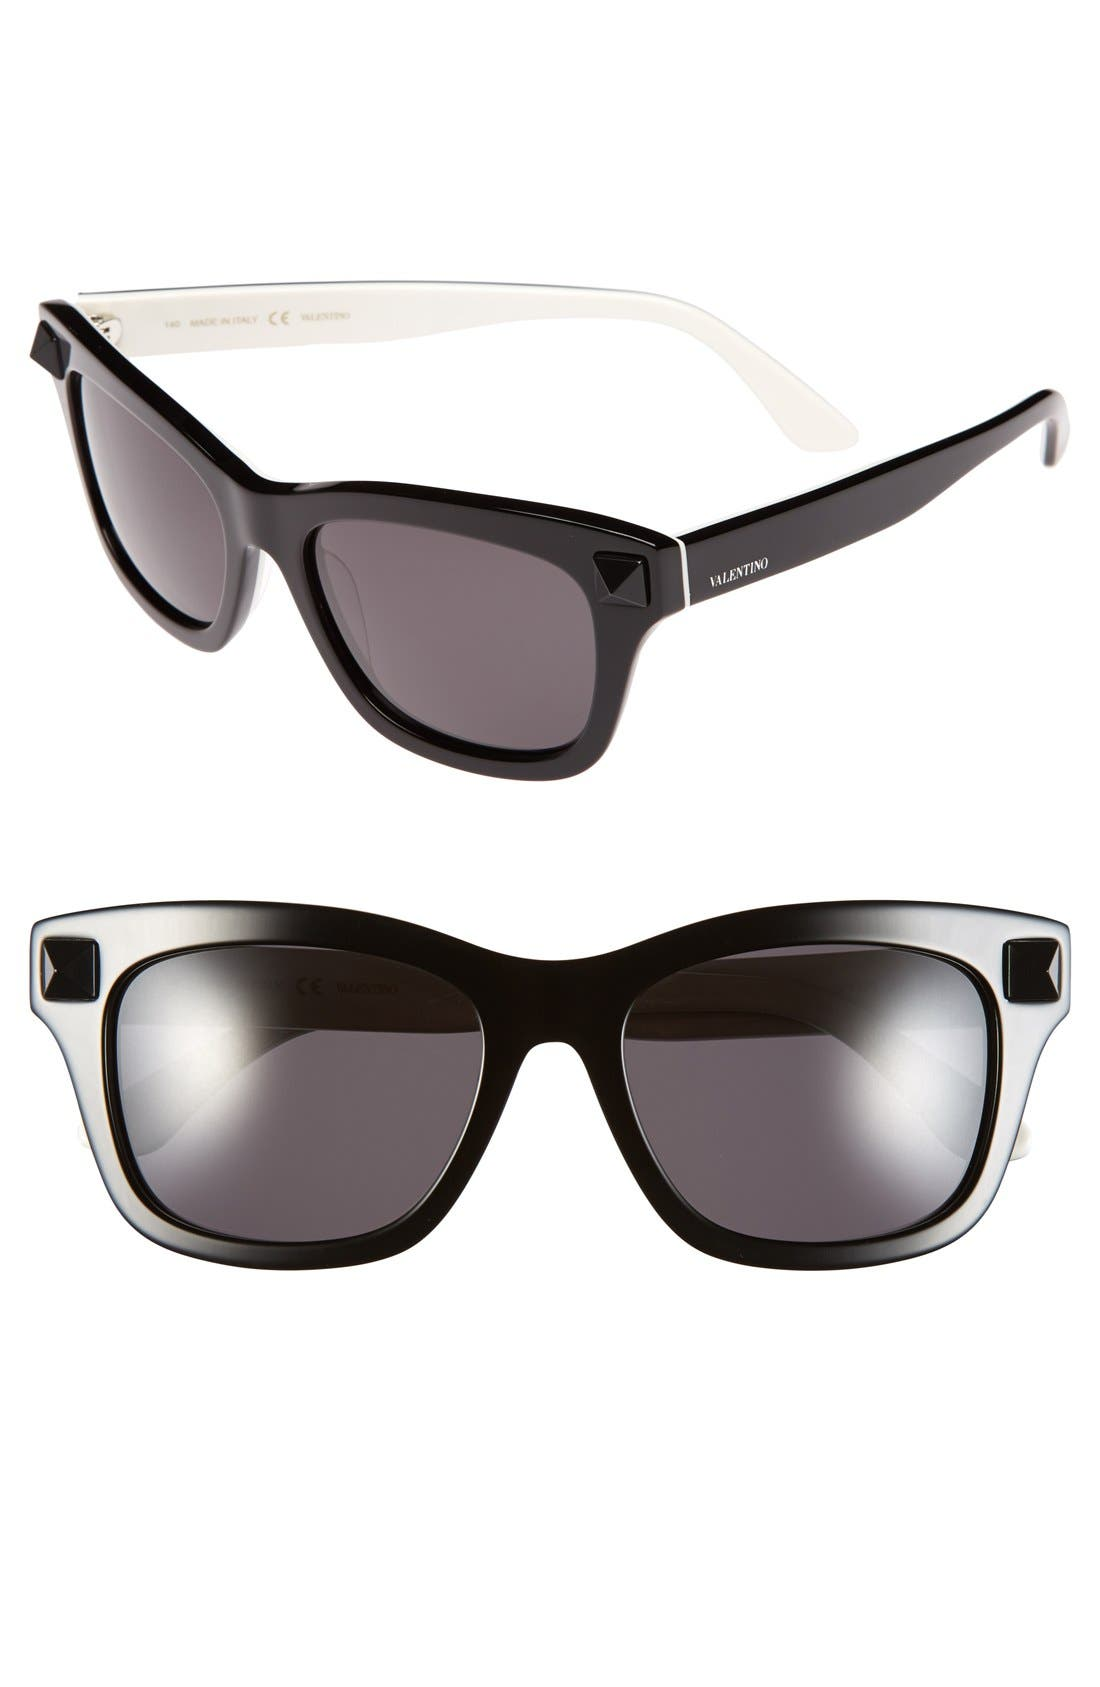 VALENTINO 'Rockstud' 53mm Retro Sunglasses, Main, color, 001